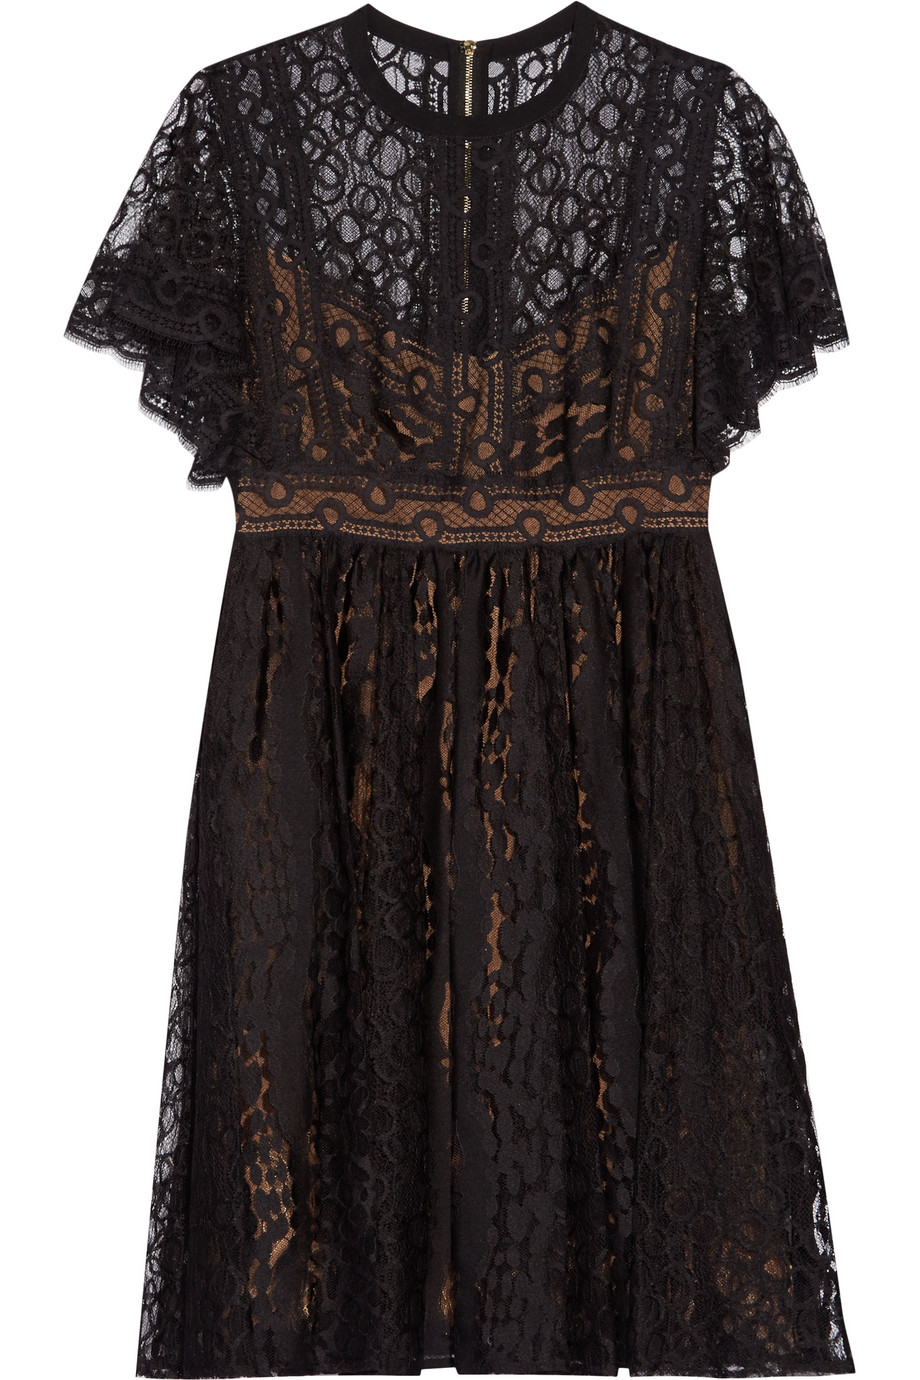 Elie Saab Guipure Lace Mini Dress, Black, Women's, Size: 40